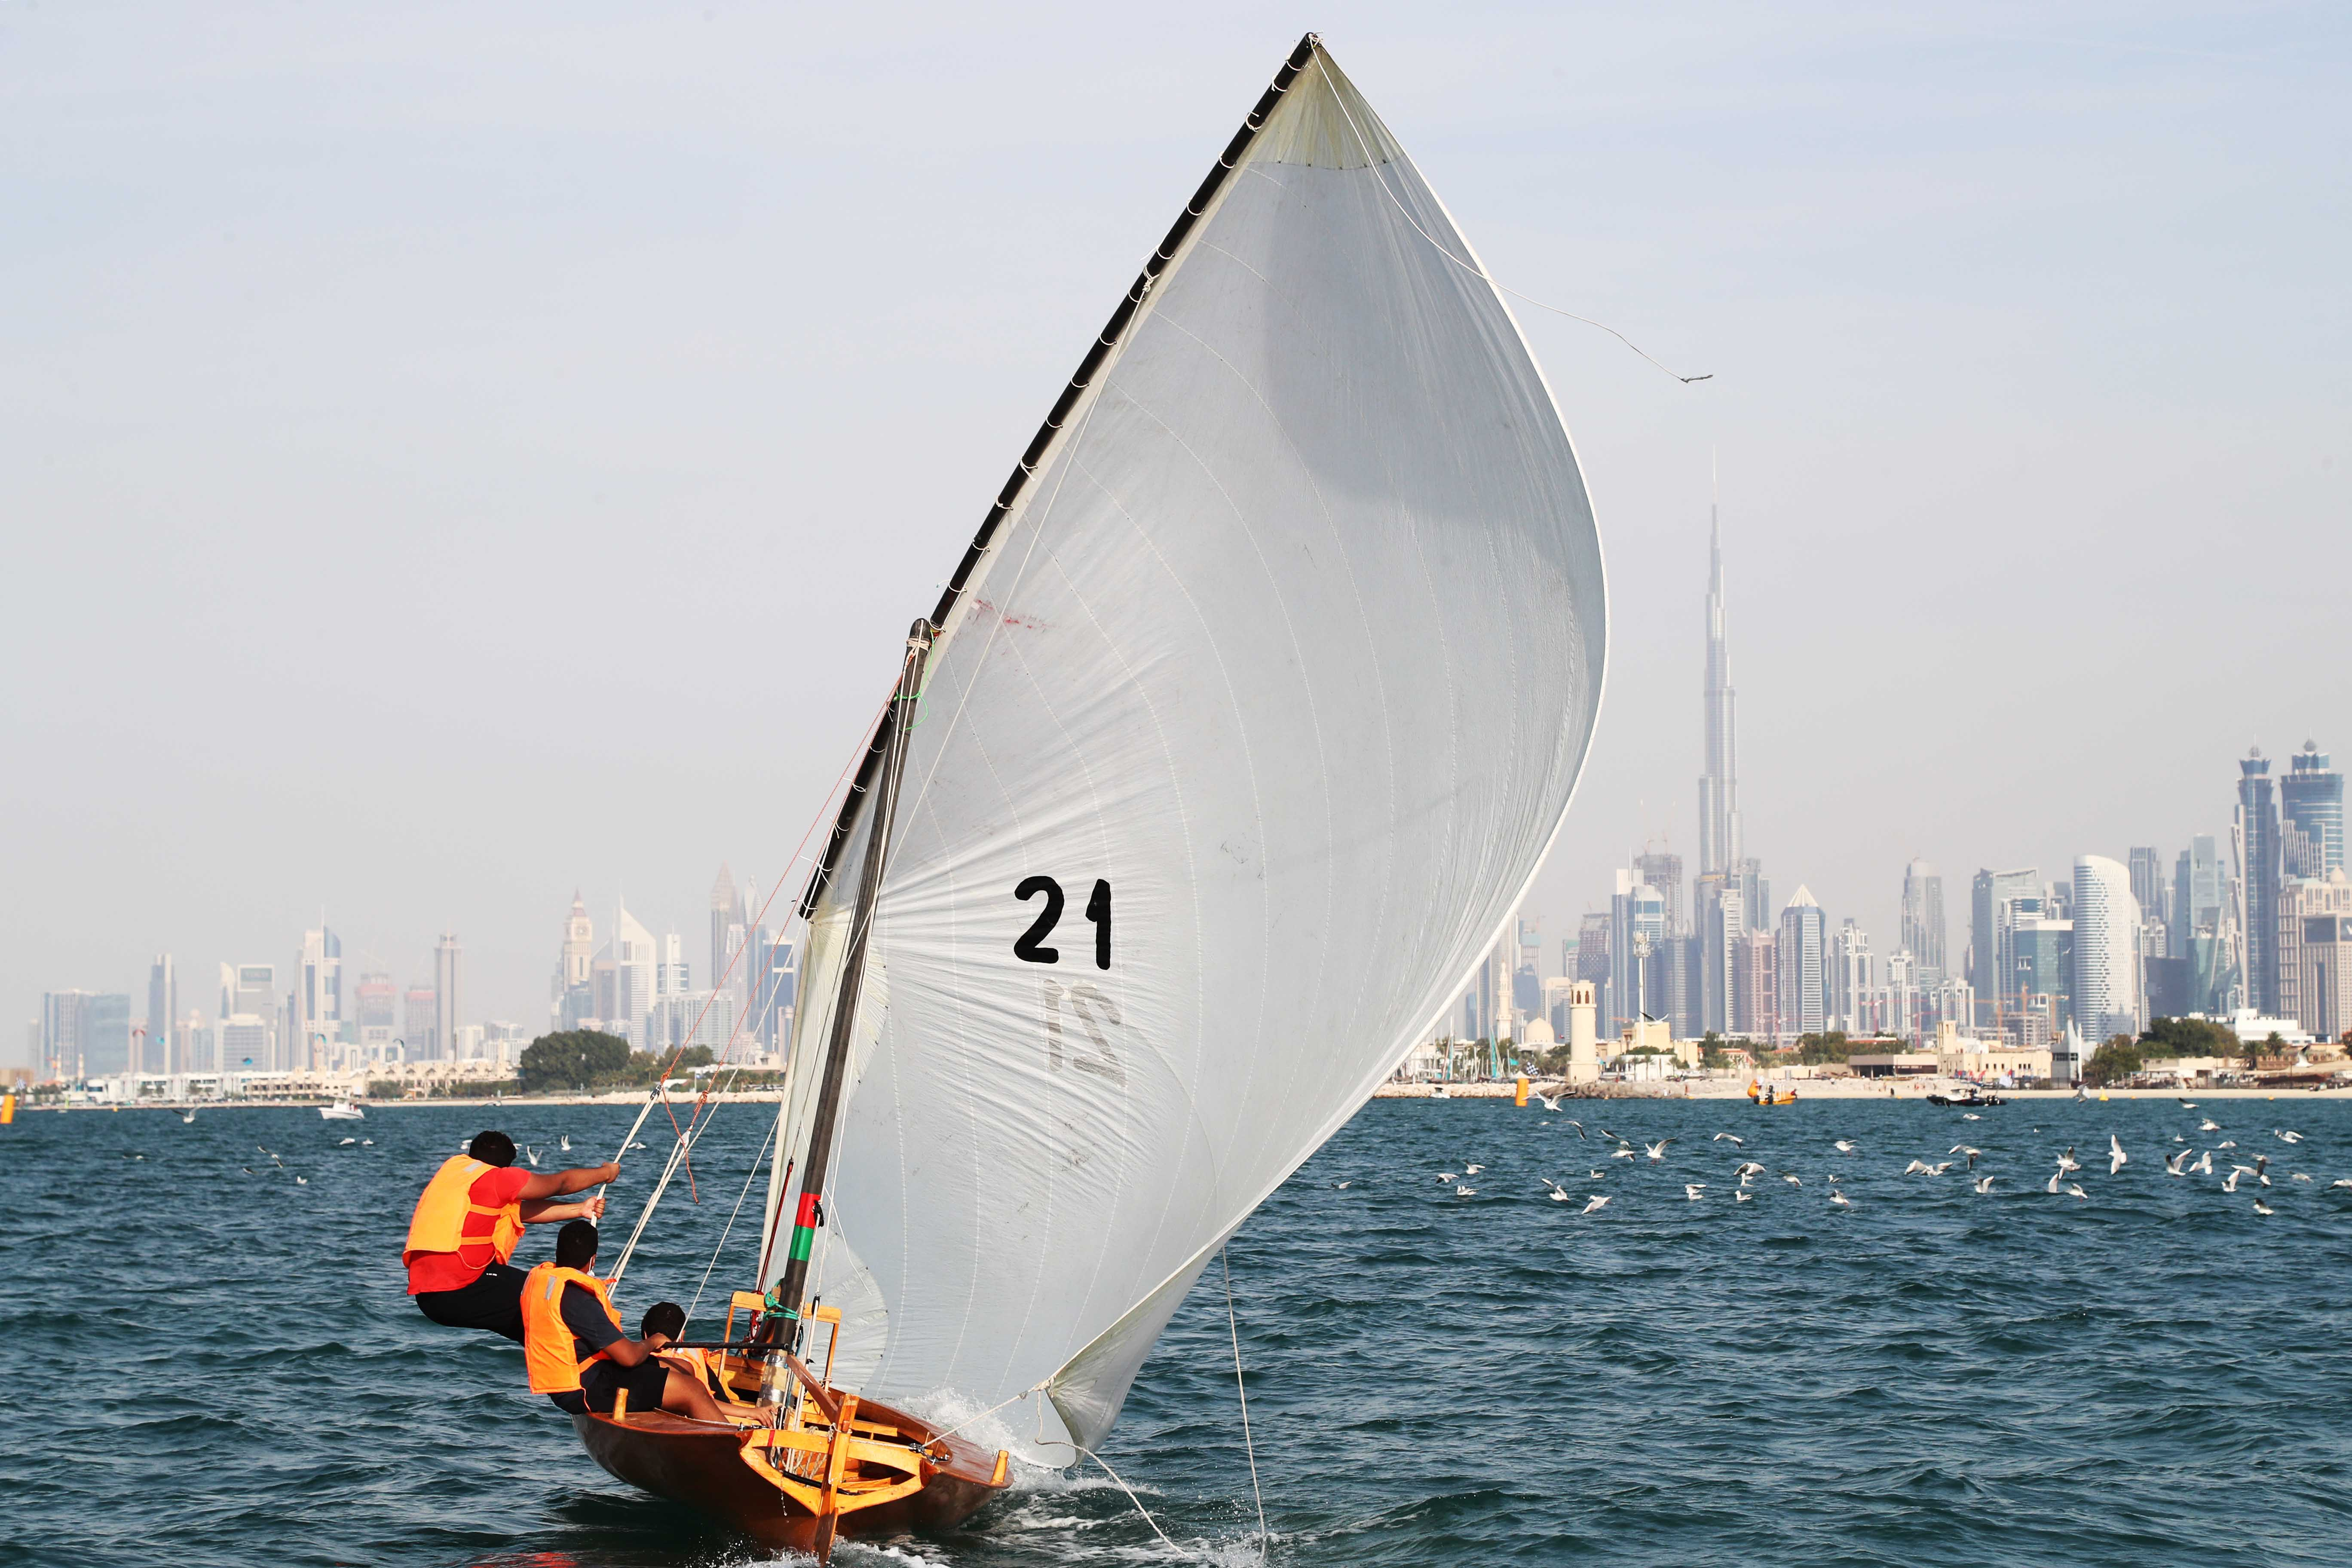 22ft Dhow Sailing Race as Season Opener on Friday